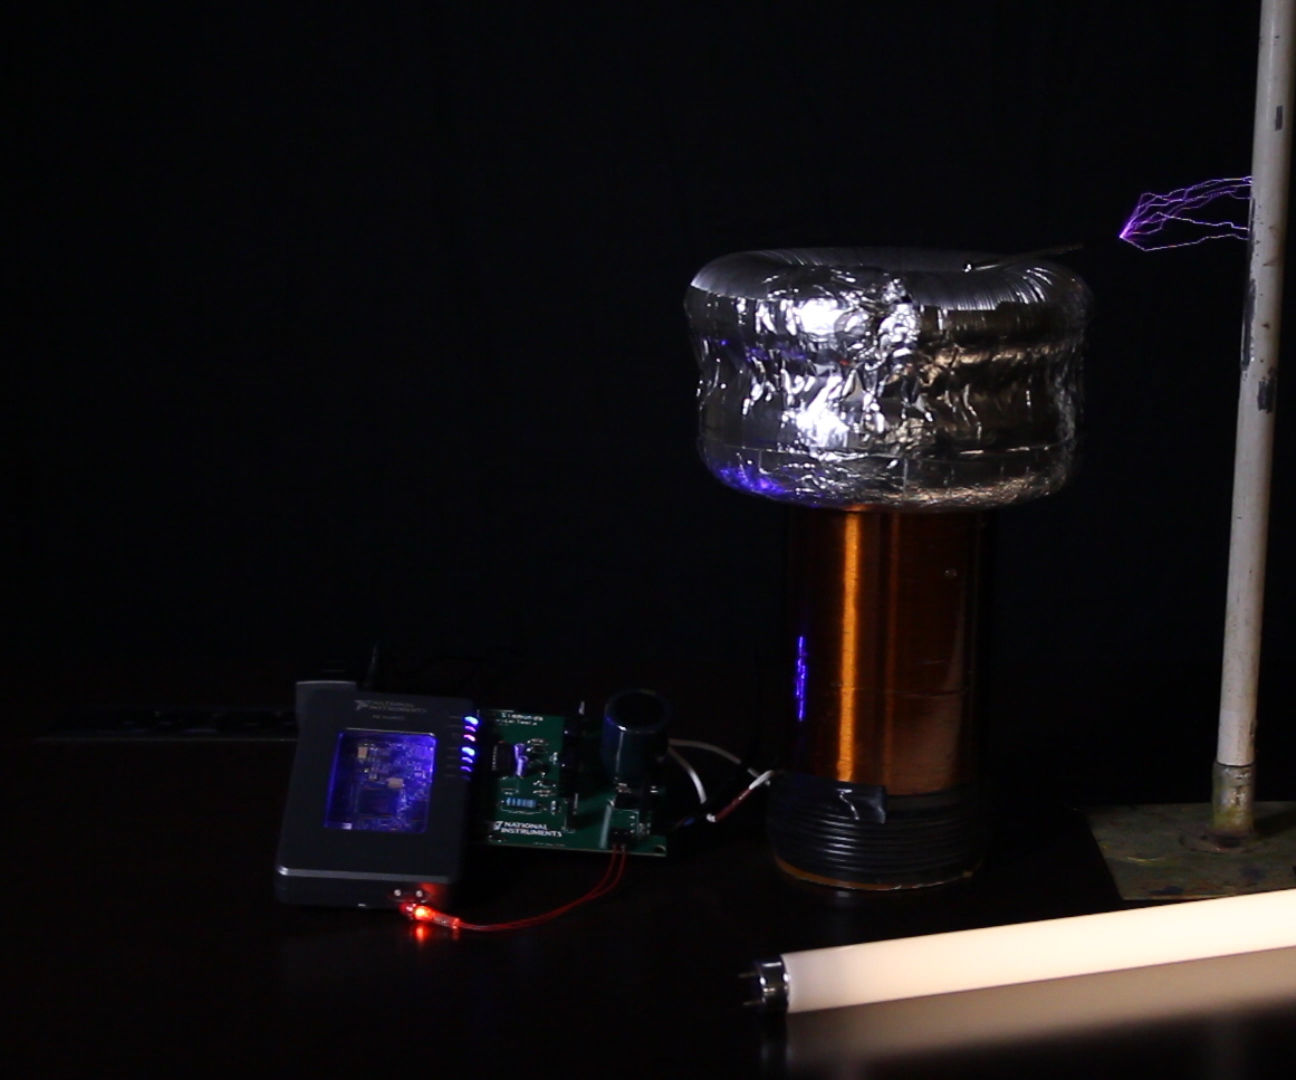 How To Make A Musical Solid State Tesla Coil (SSTC) That Plays Guitar!